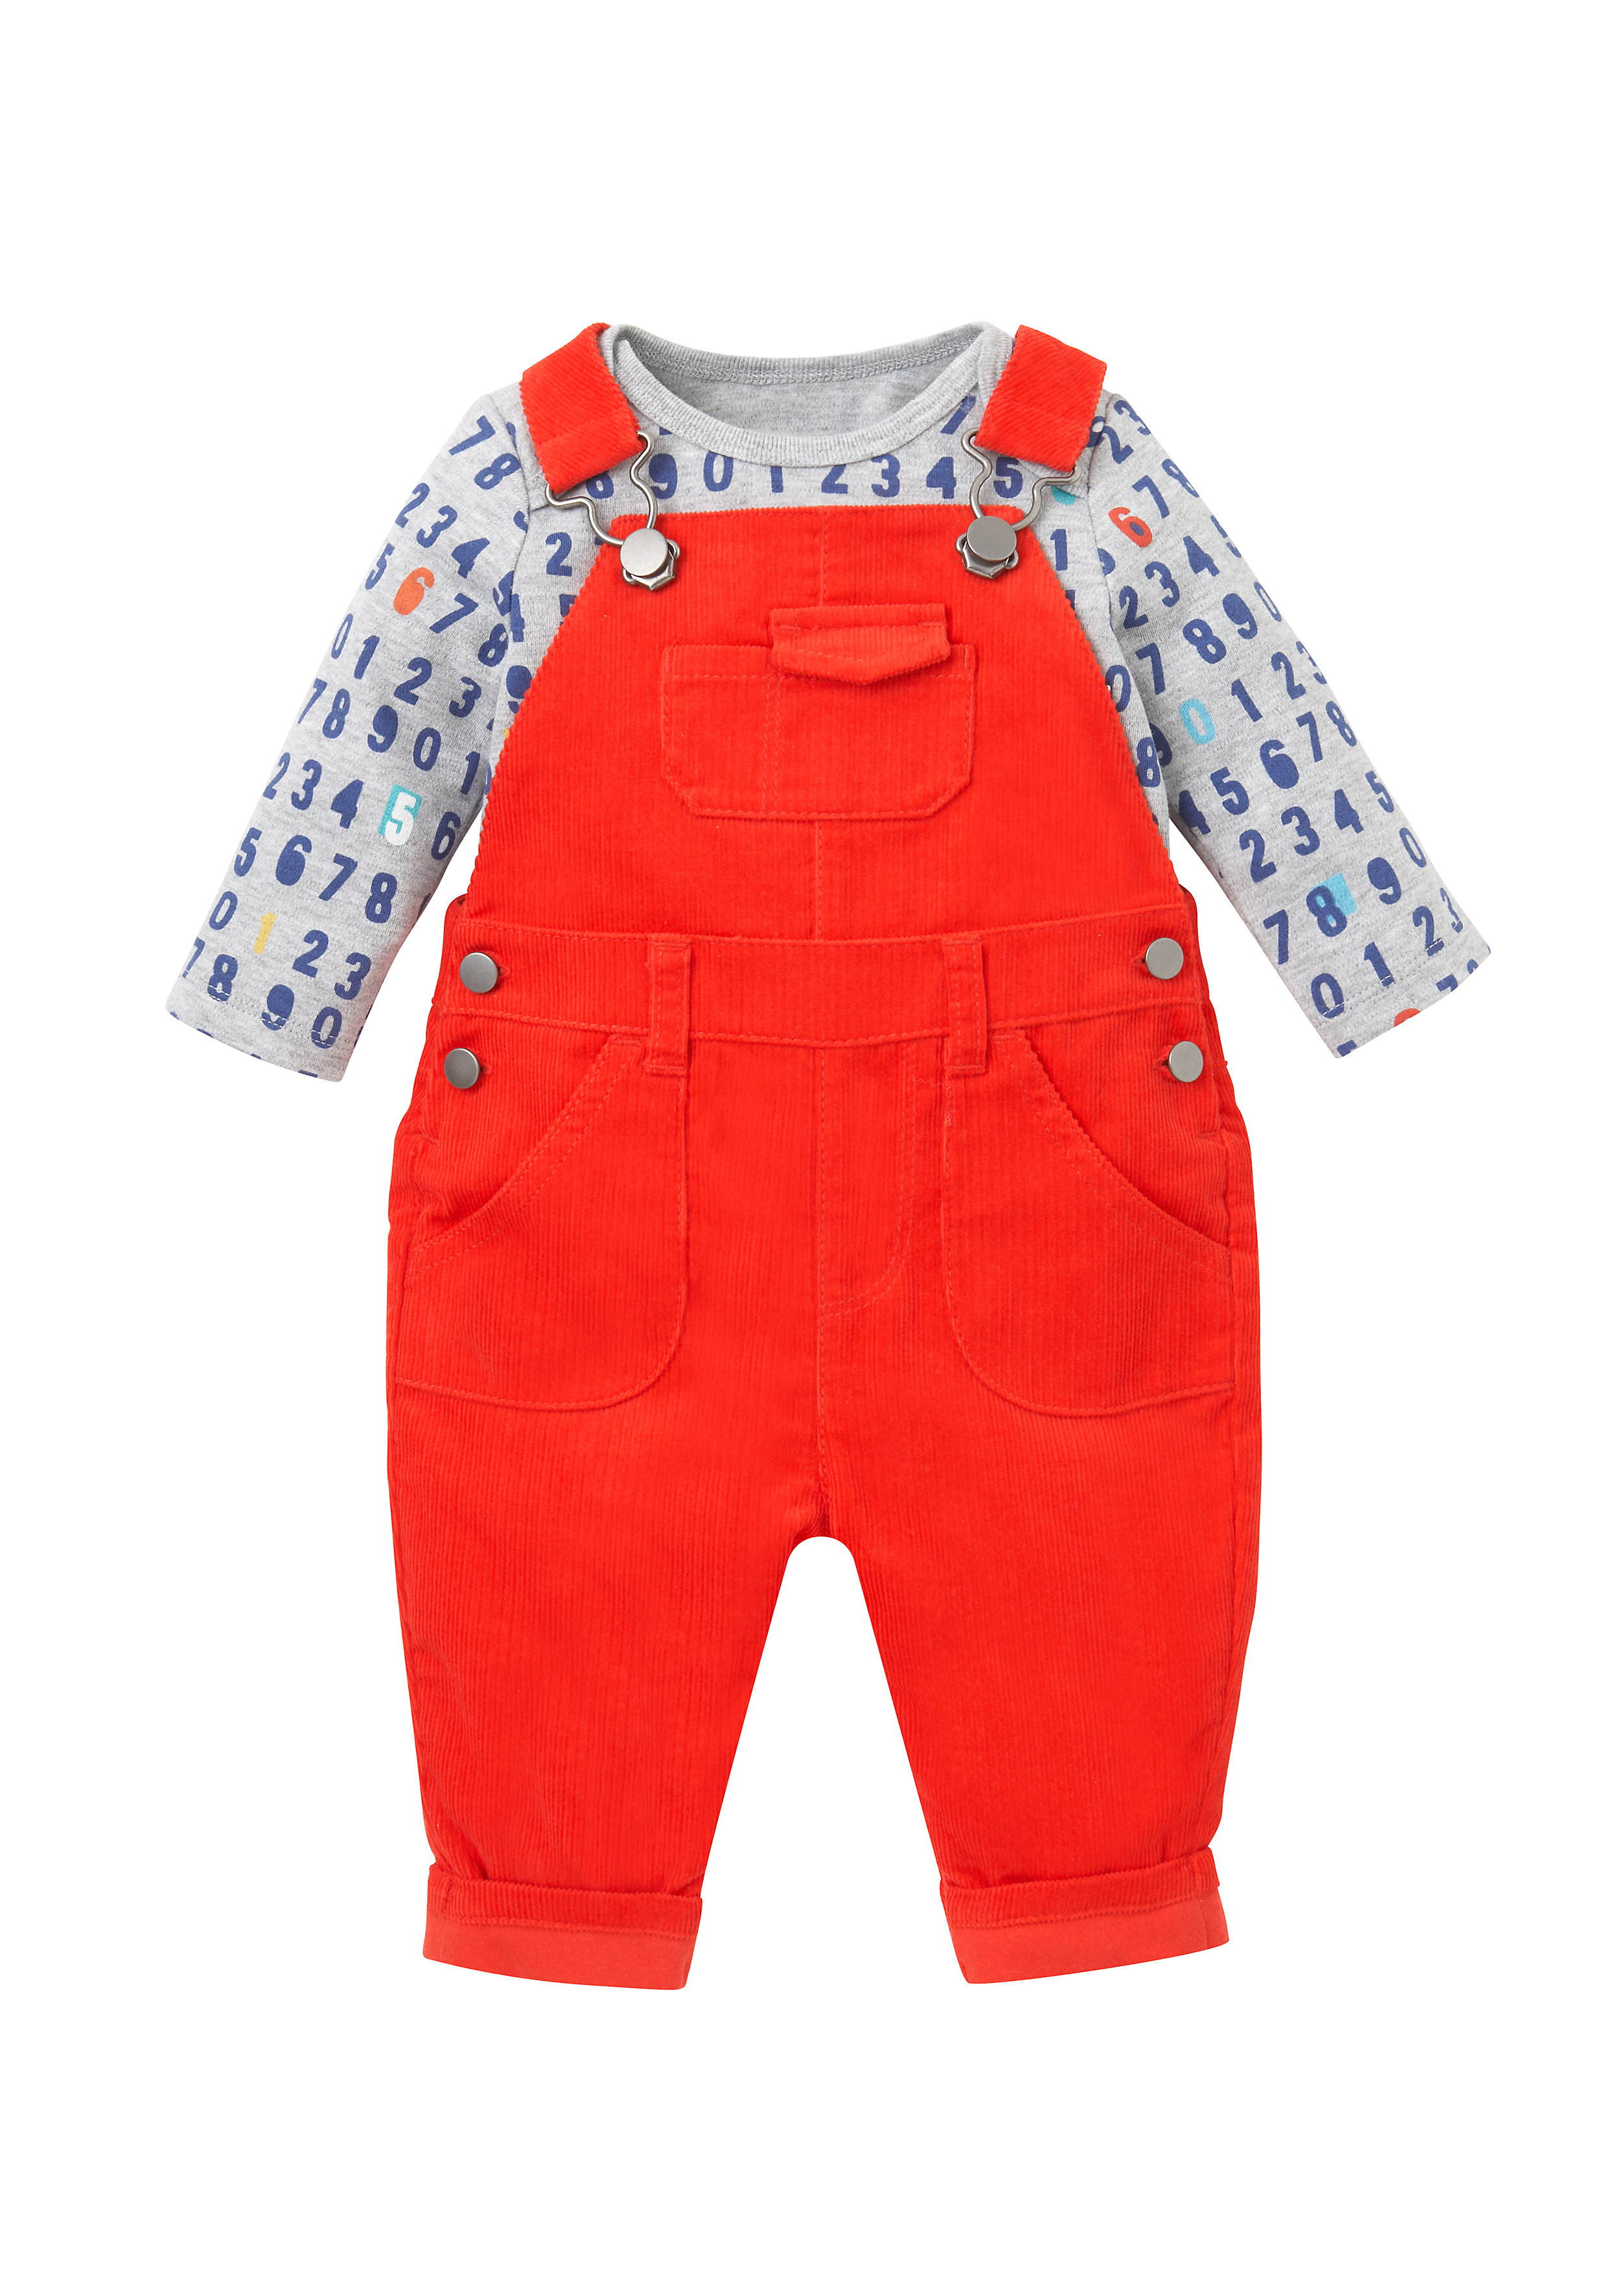 Mothercare | Boys Full Sleeves Cord Dungaree Set Number Print - Red